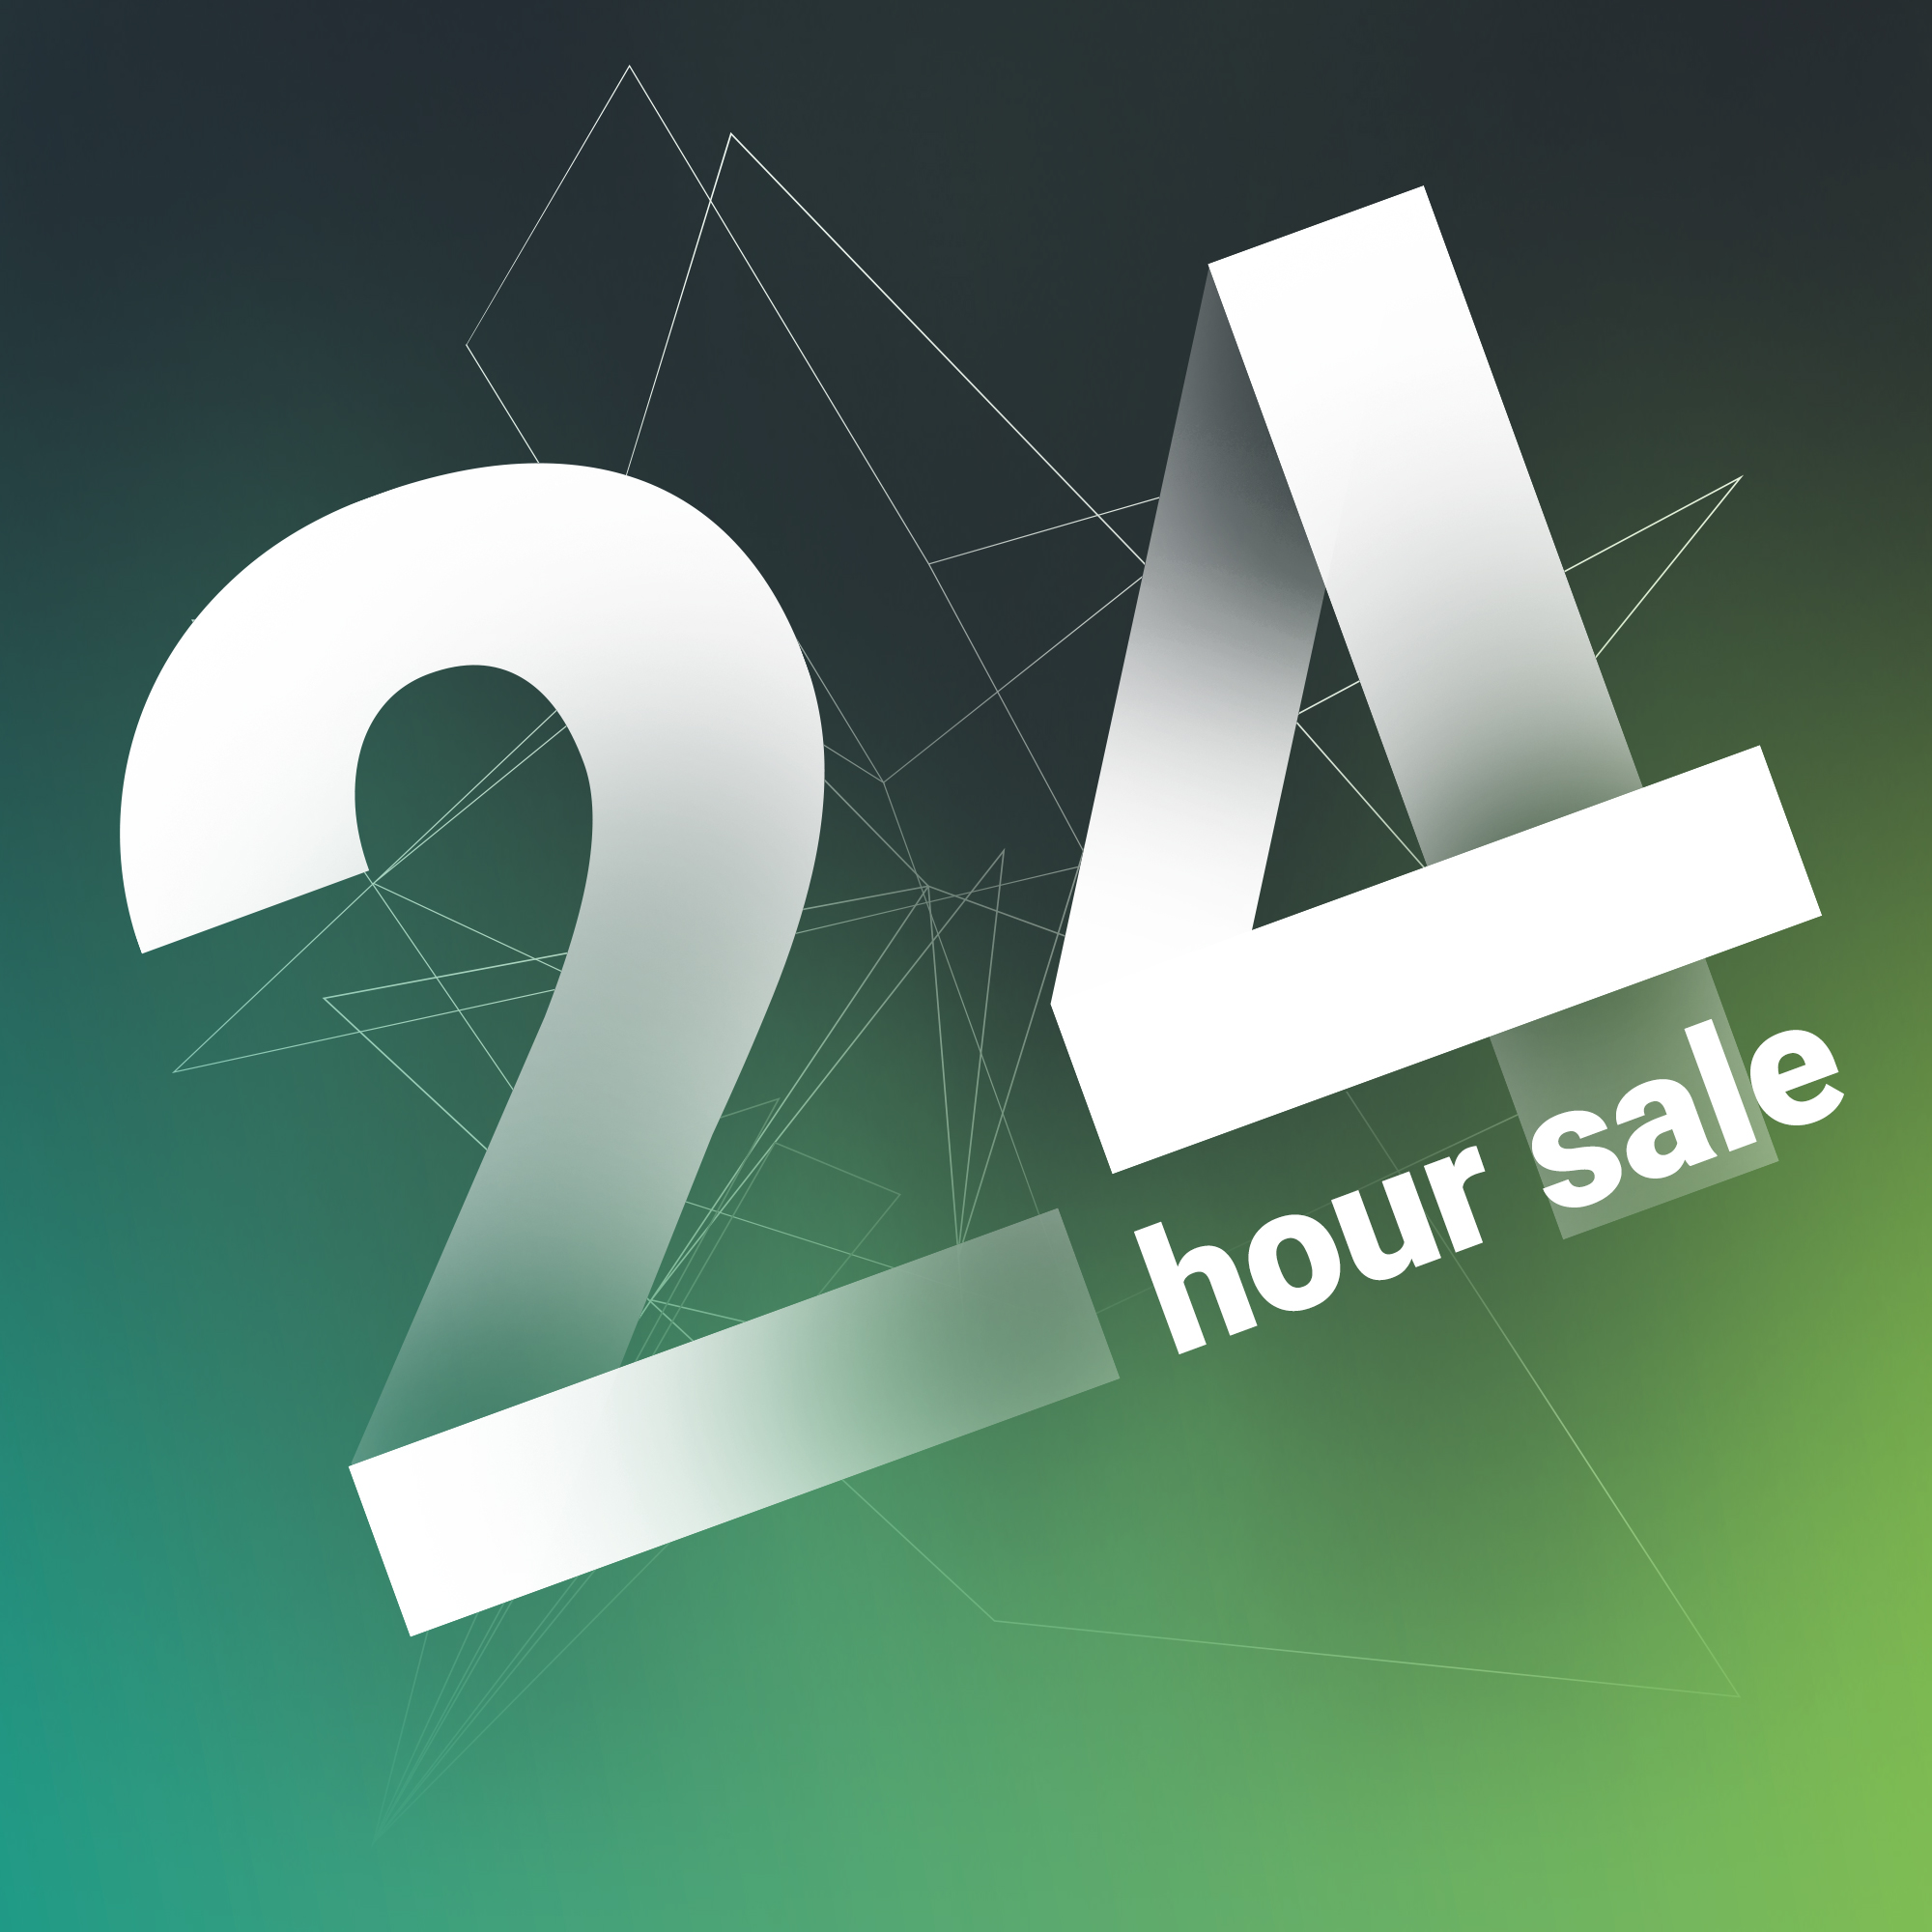 Asset Store 24 hour sale graphics